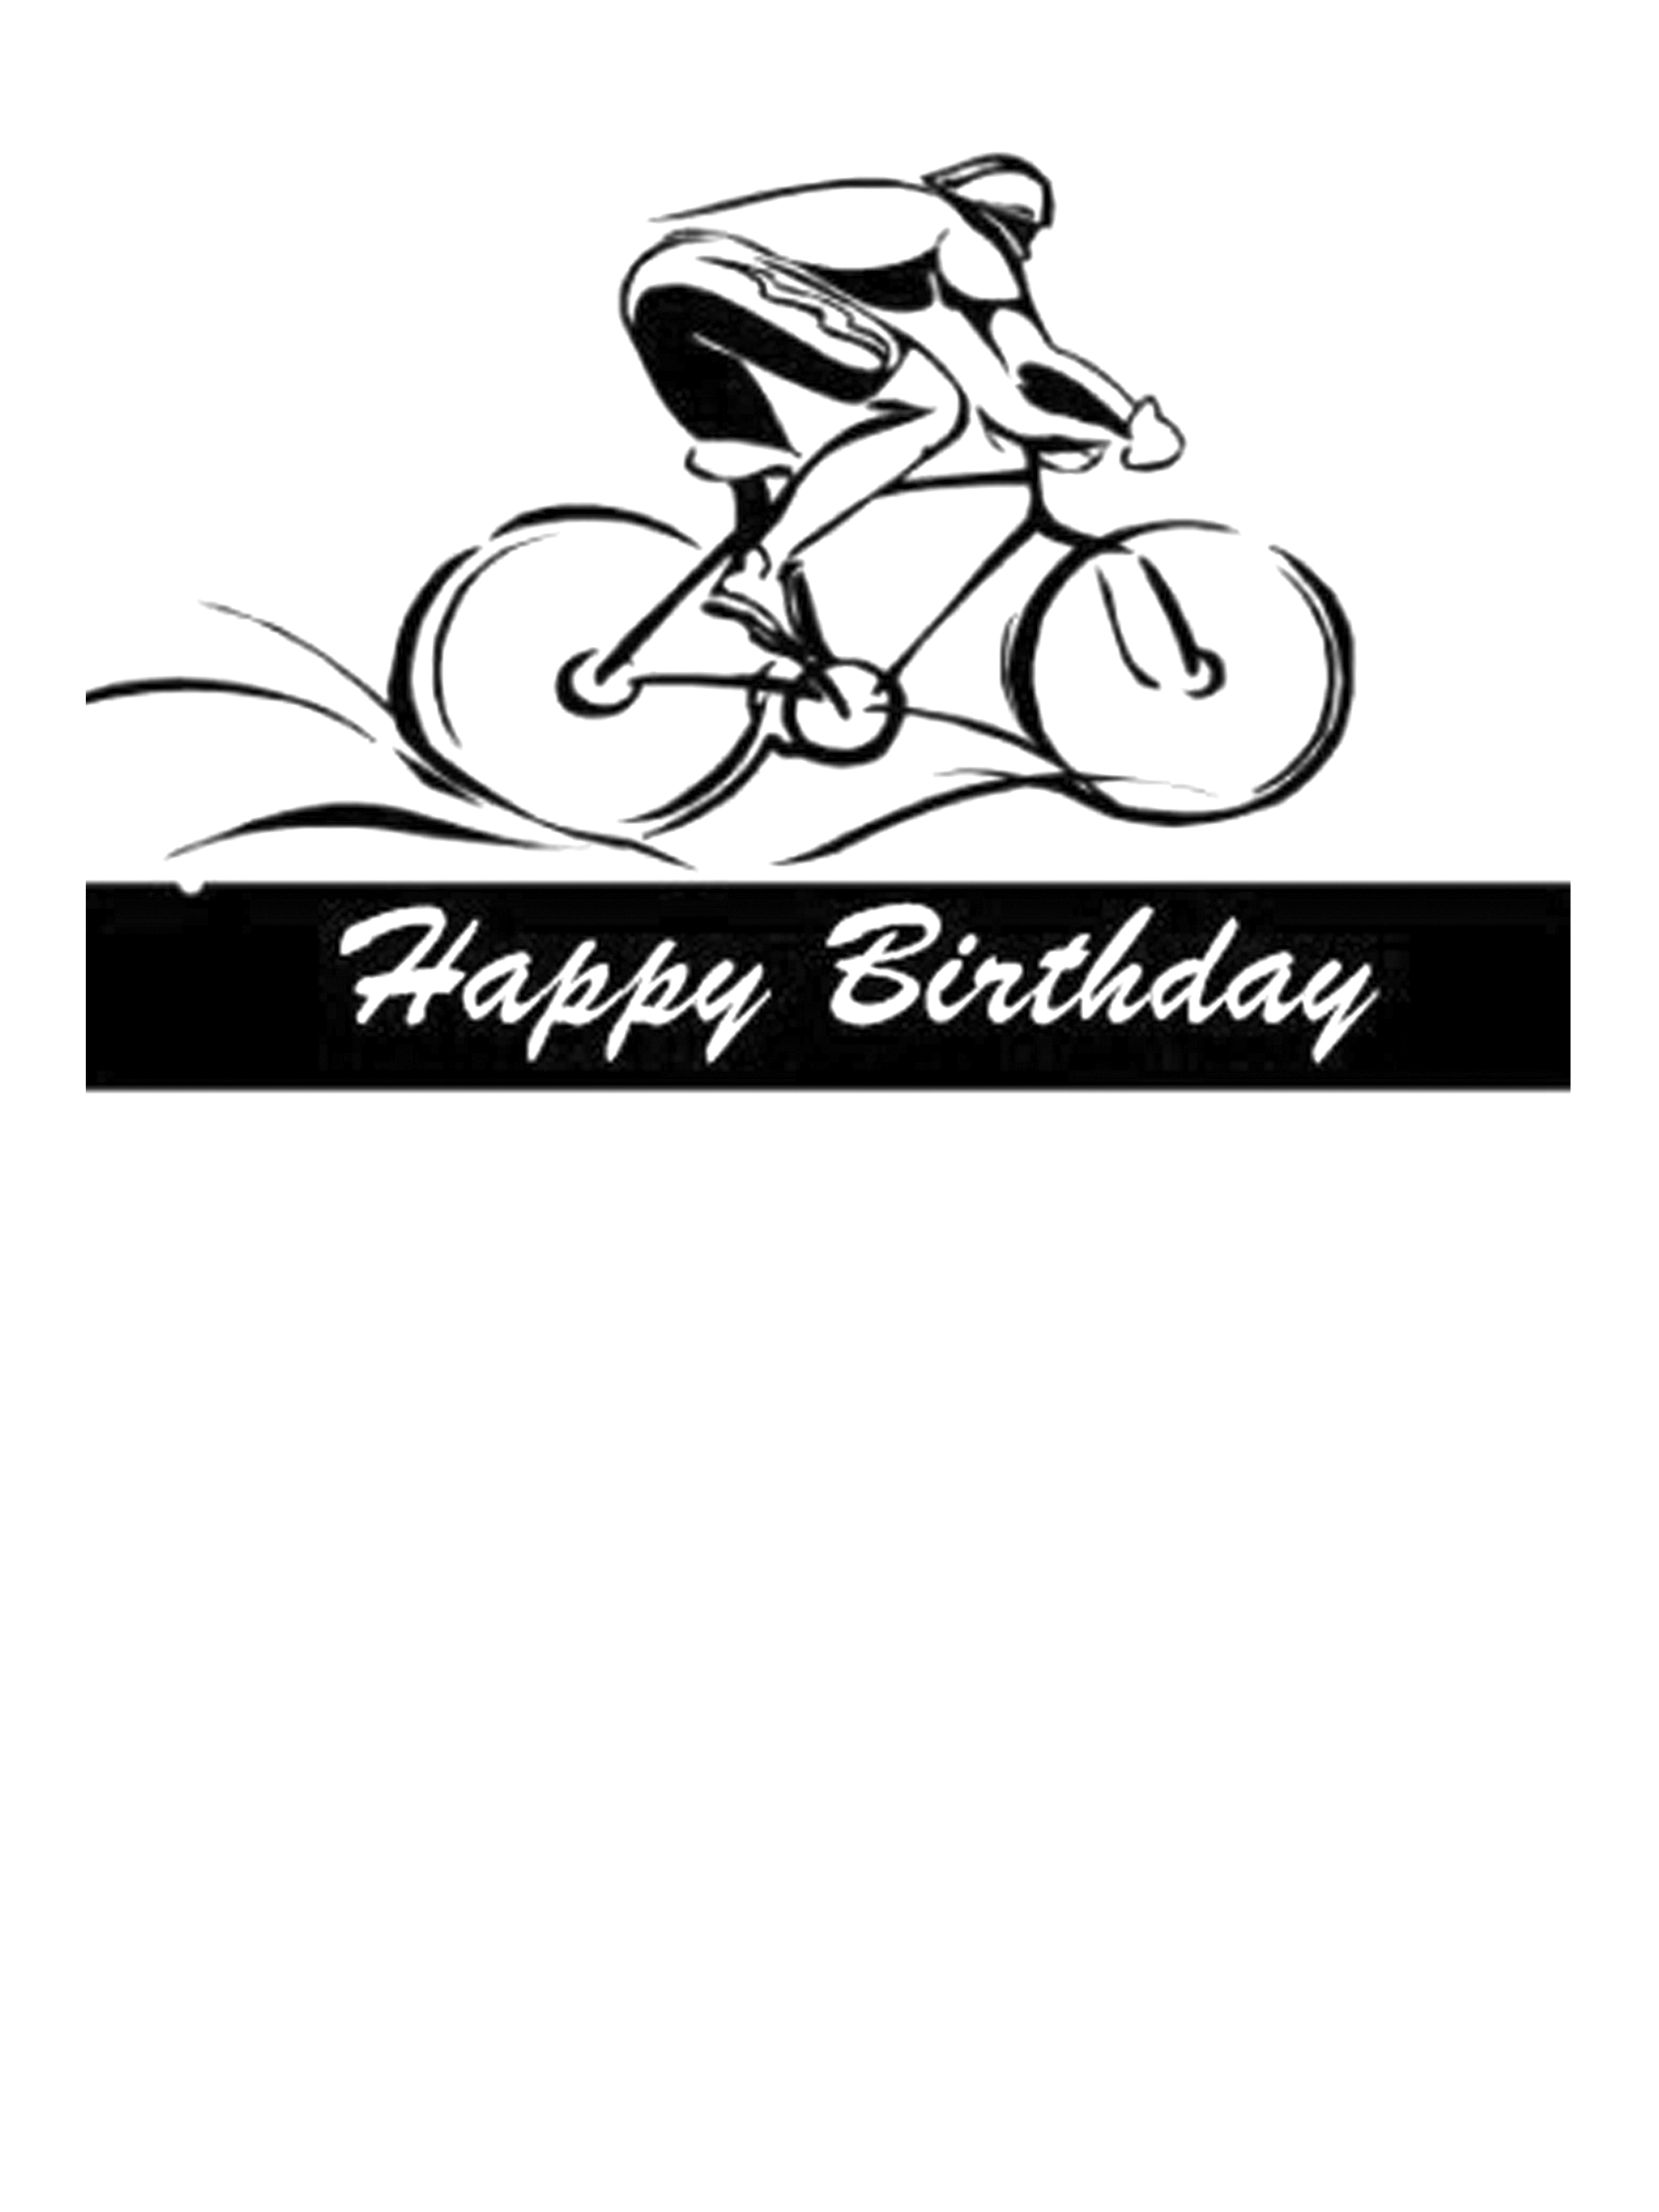 0330 – Happy Birthday Bicycle